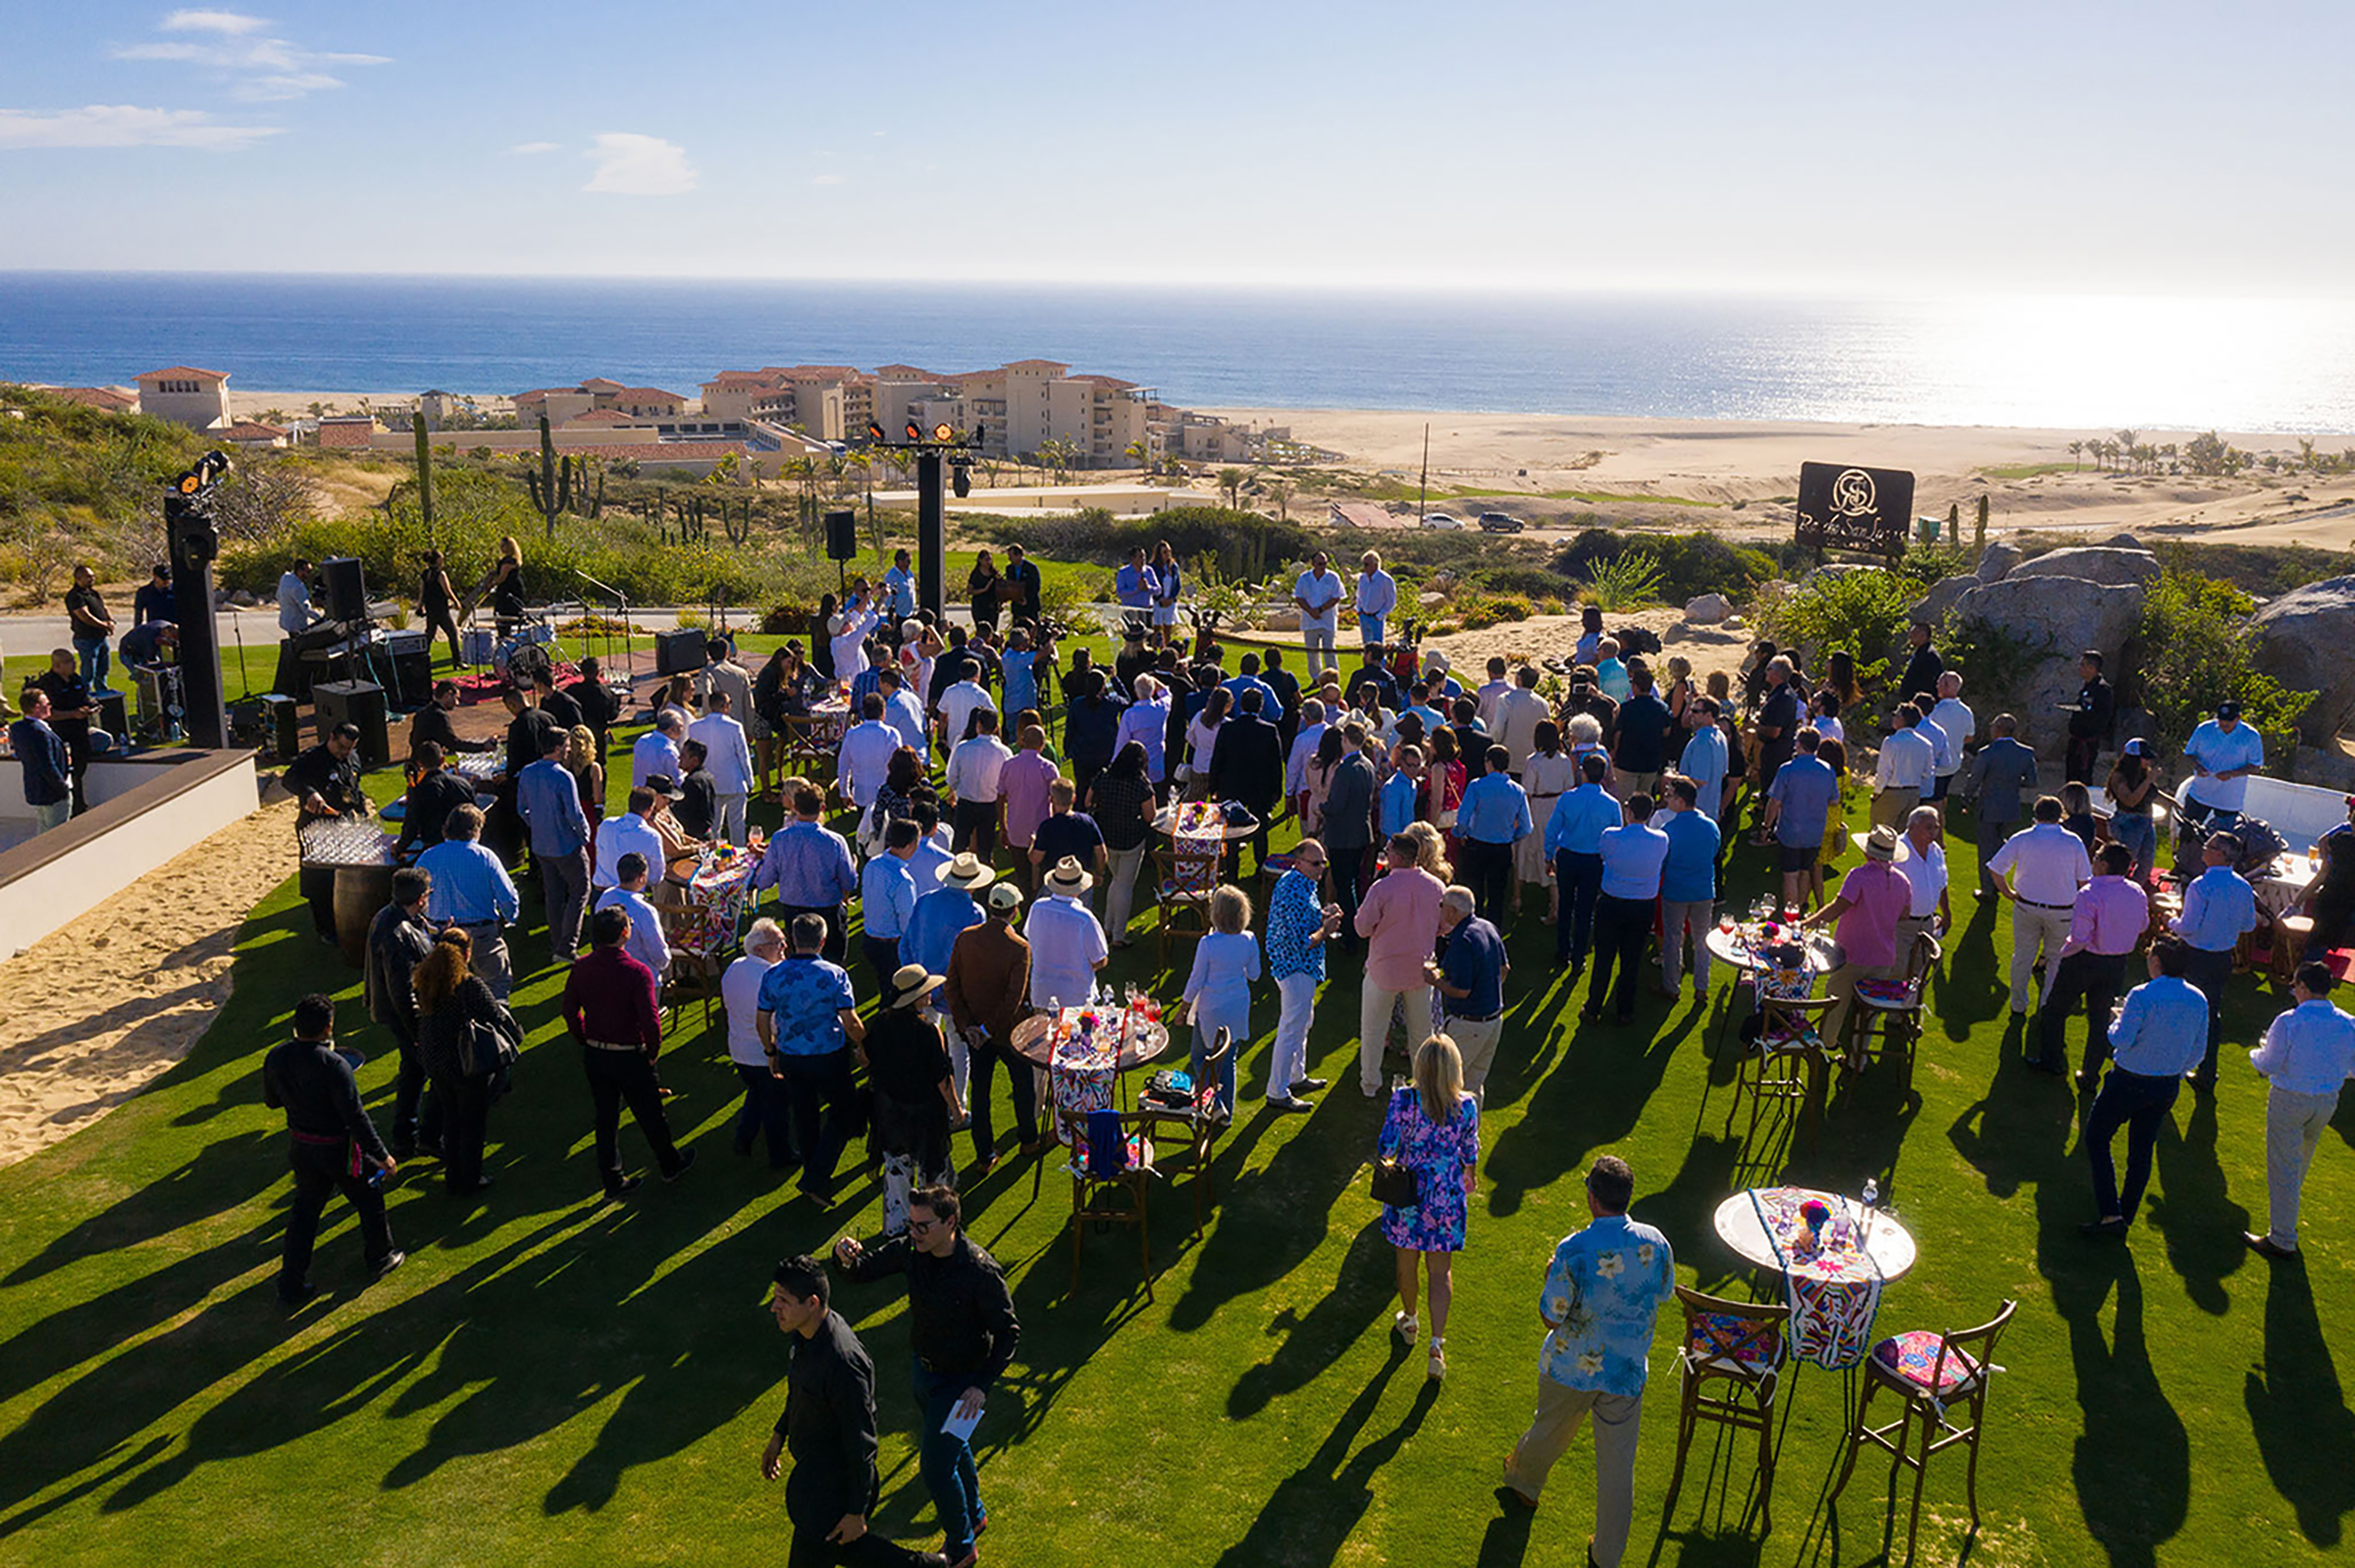 People gather at the opening of the Rancho San Lucas golf course overlooking the ocean.